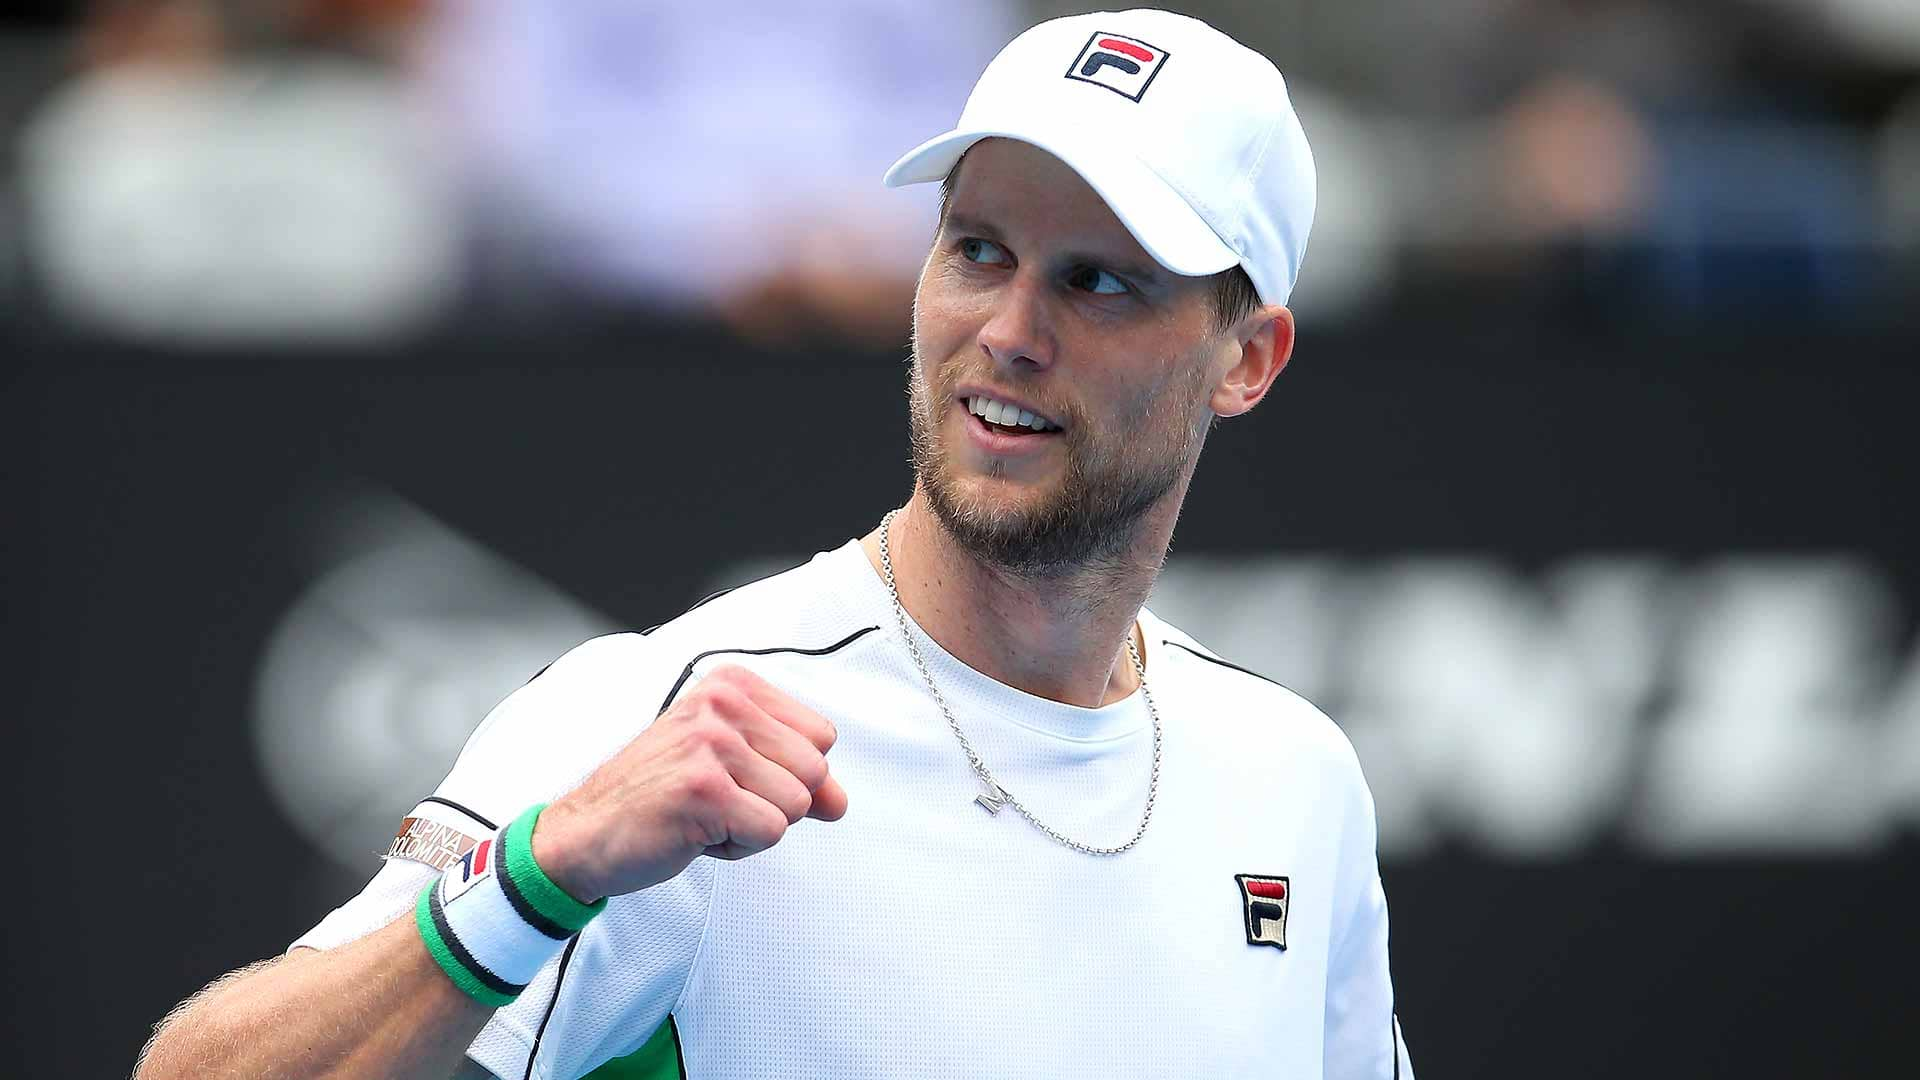 Andreas Seppi beats Stefanos Tsitsipas at the Sydney International